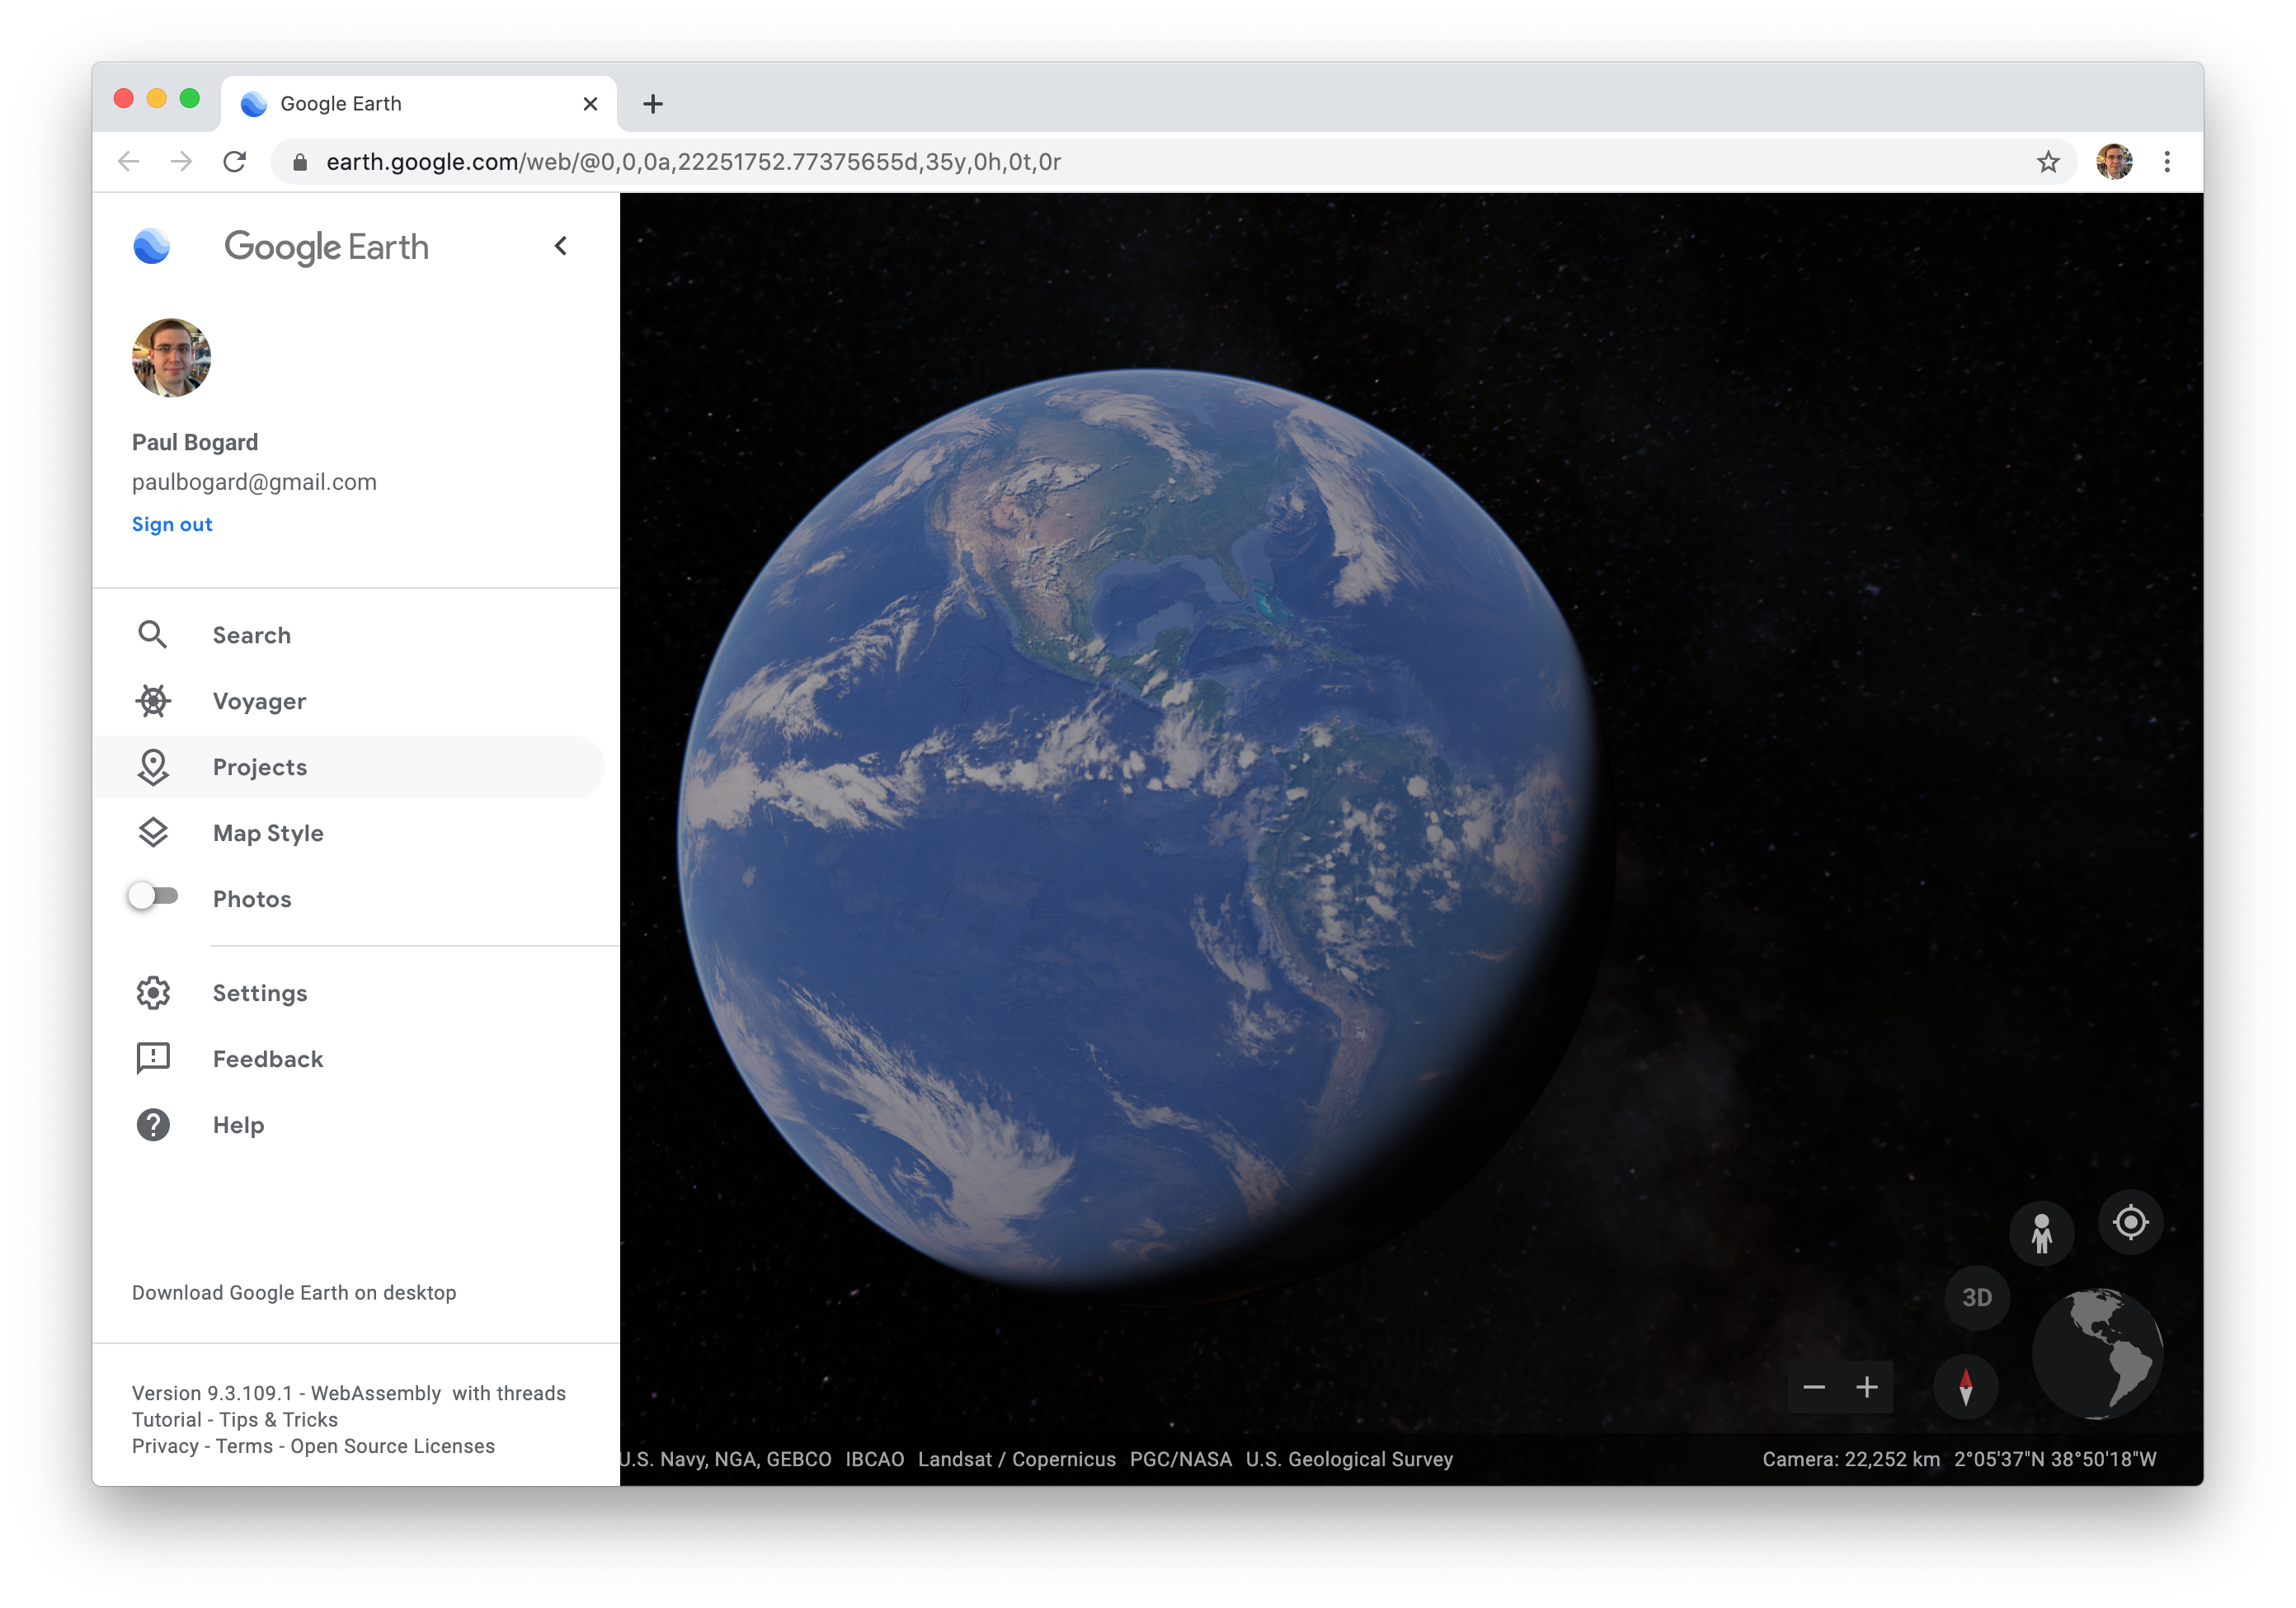 Google Earth Web sidebar menu.